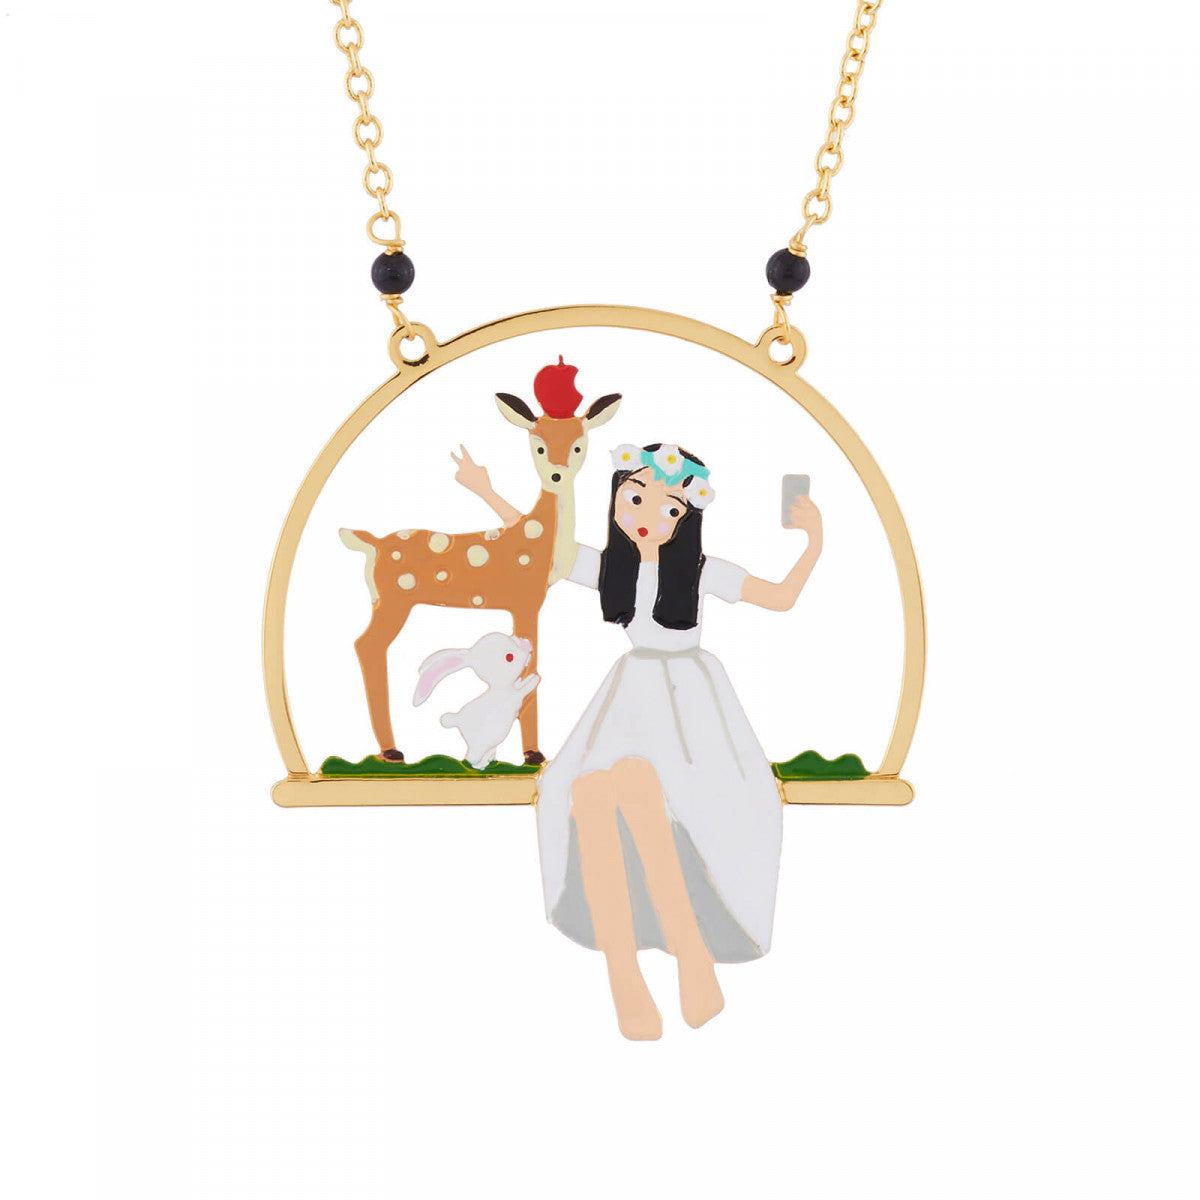 Snow White and her Deer Friend Taking a Selfie Necklace